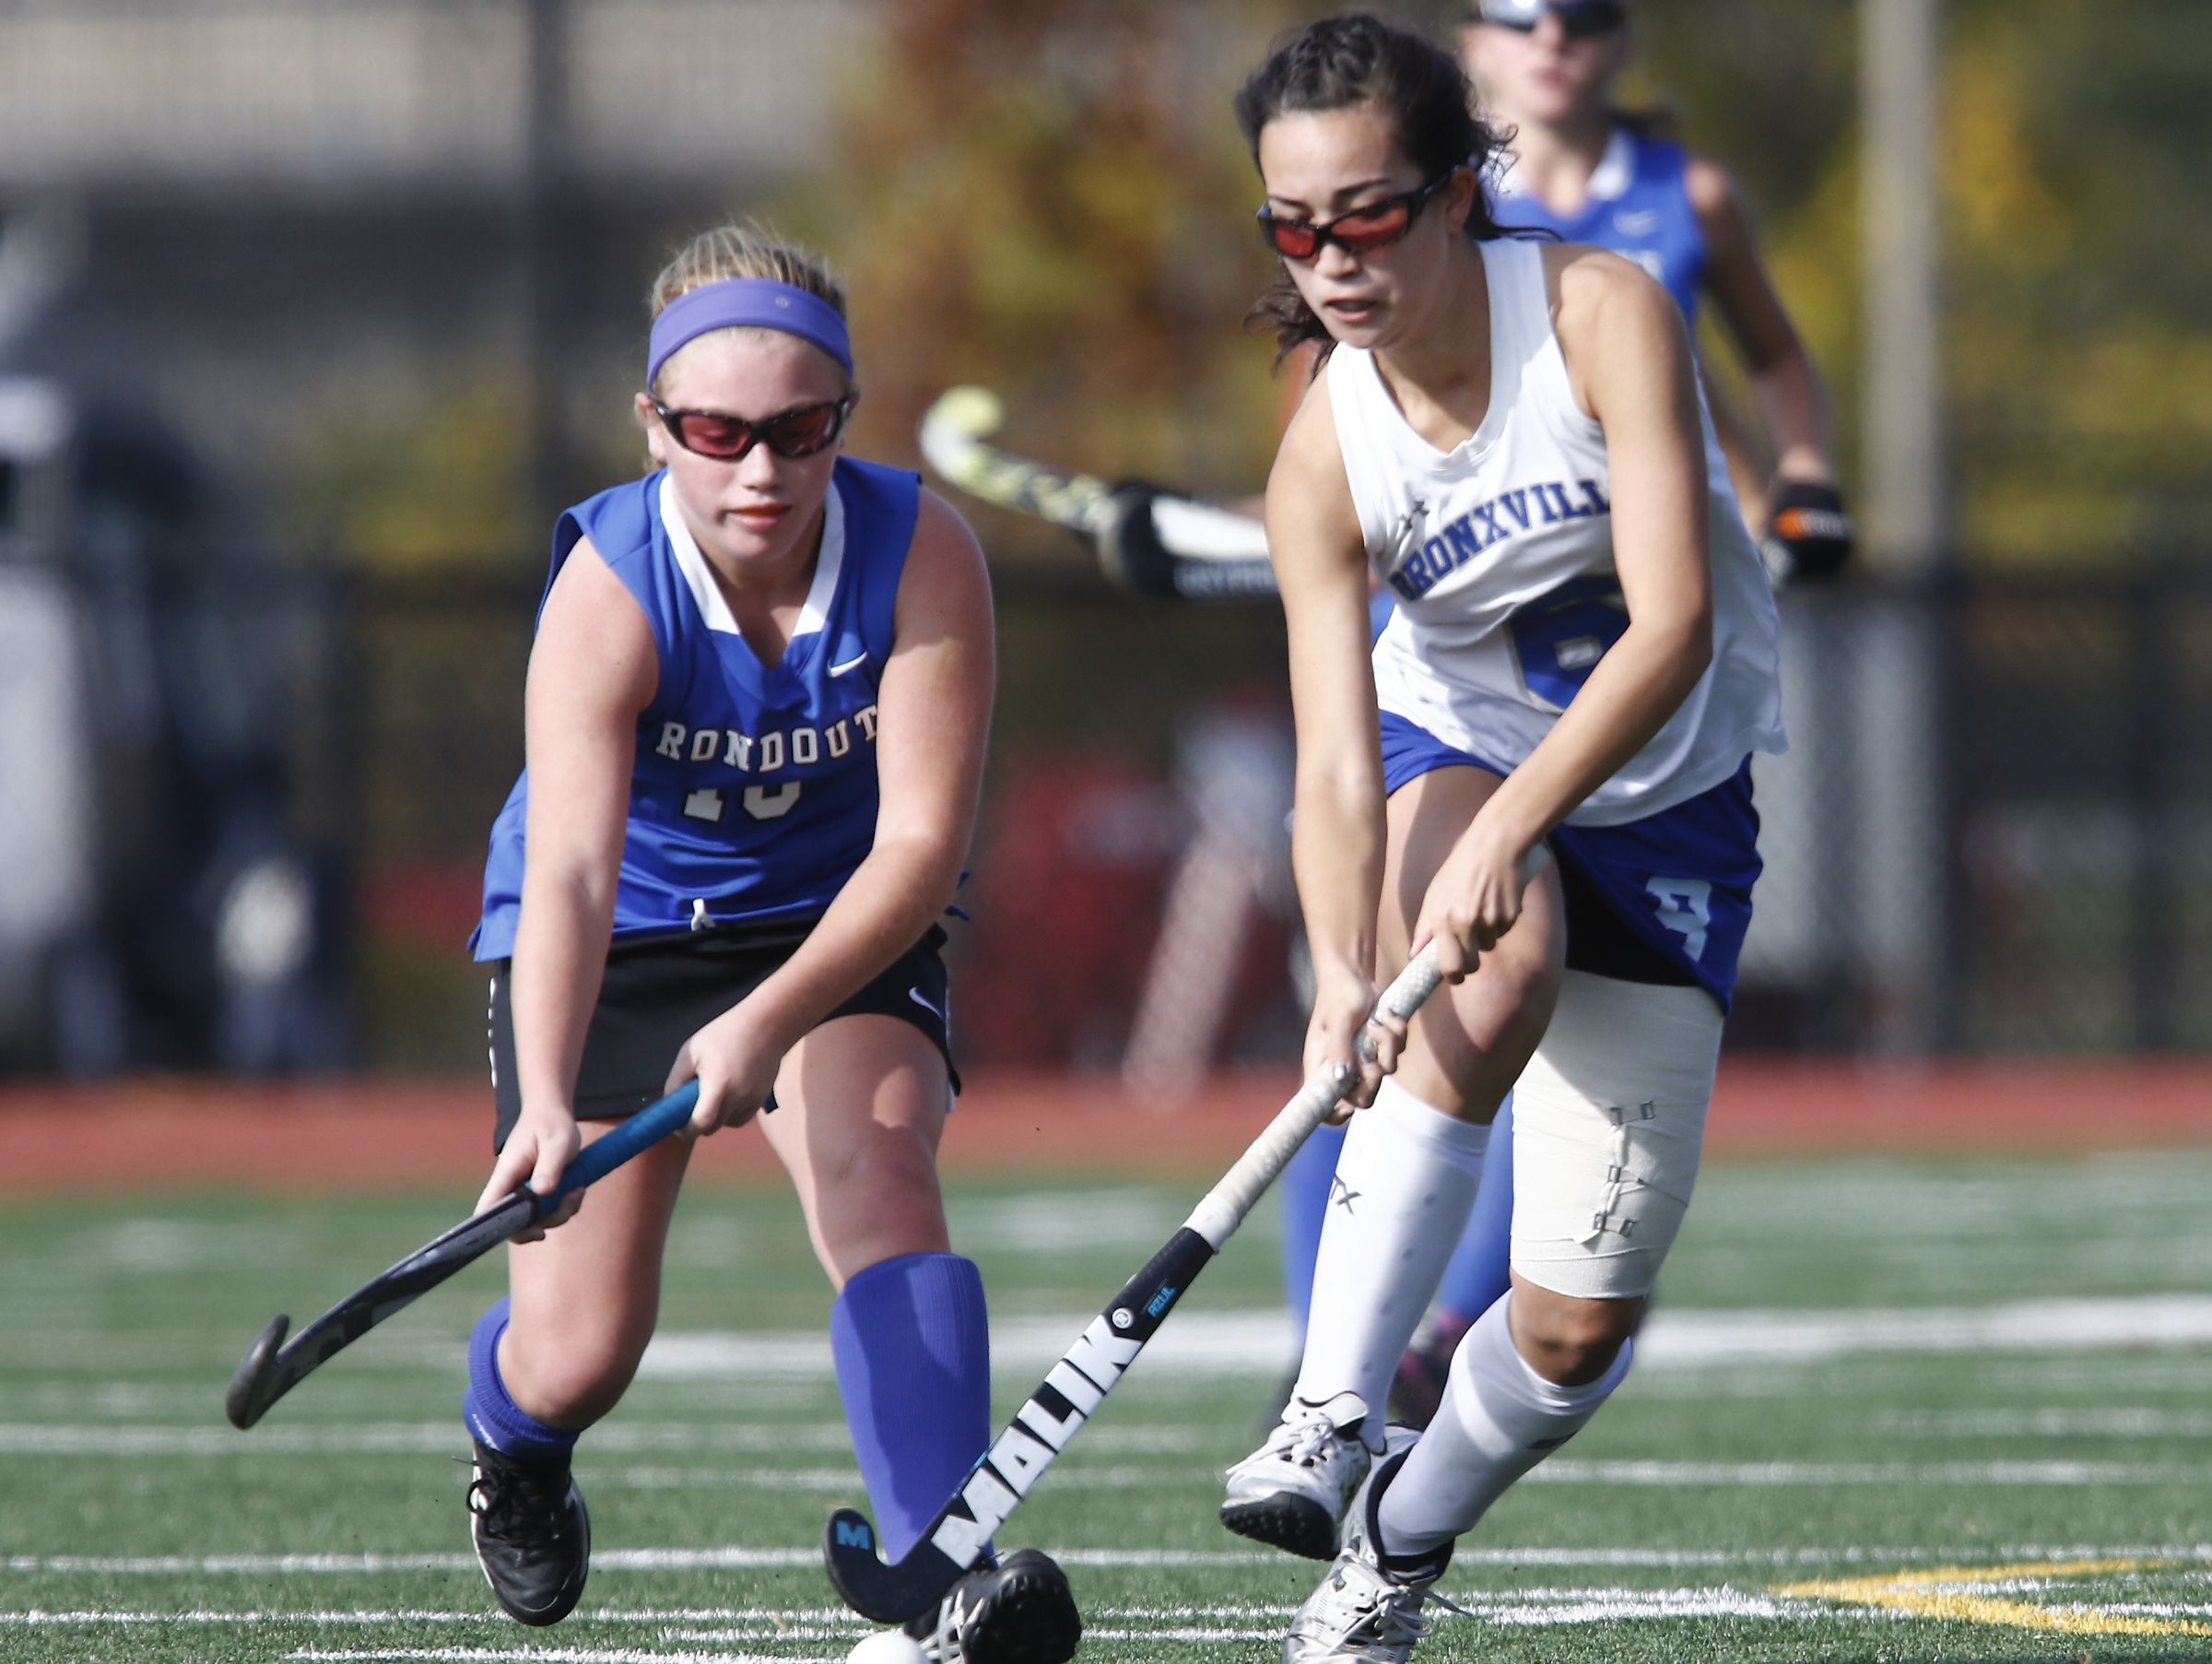 Bronxville's Hannah Weirens (15)works past a Roundout Valley defender during their 2-0 win over Roundout Valley in the Class C regional championship field hockey game at Valhalla High School on Saturday, November 5, 2016.